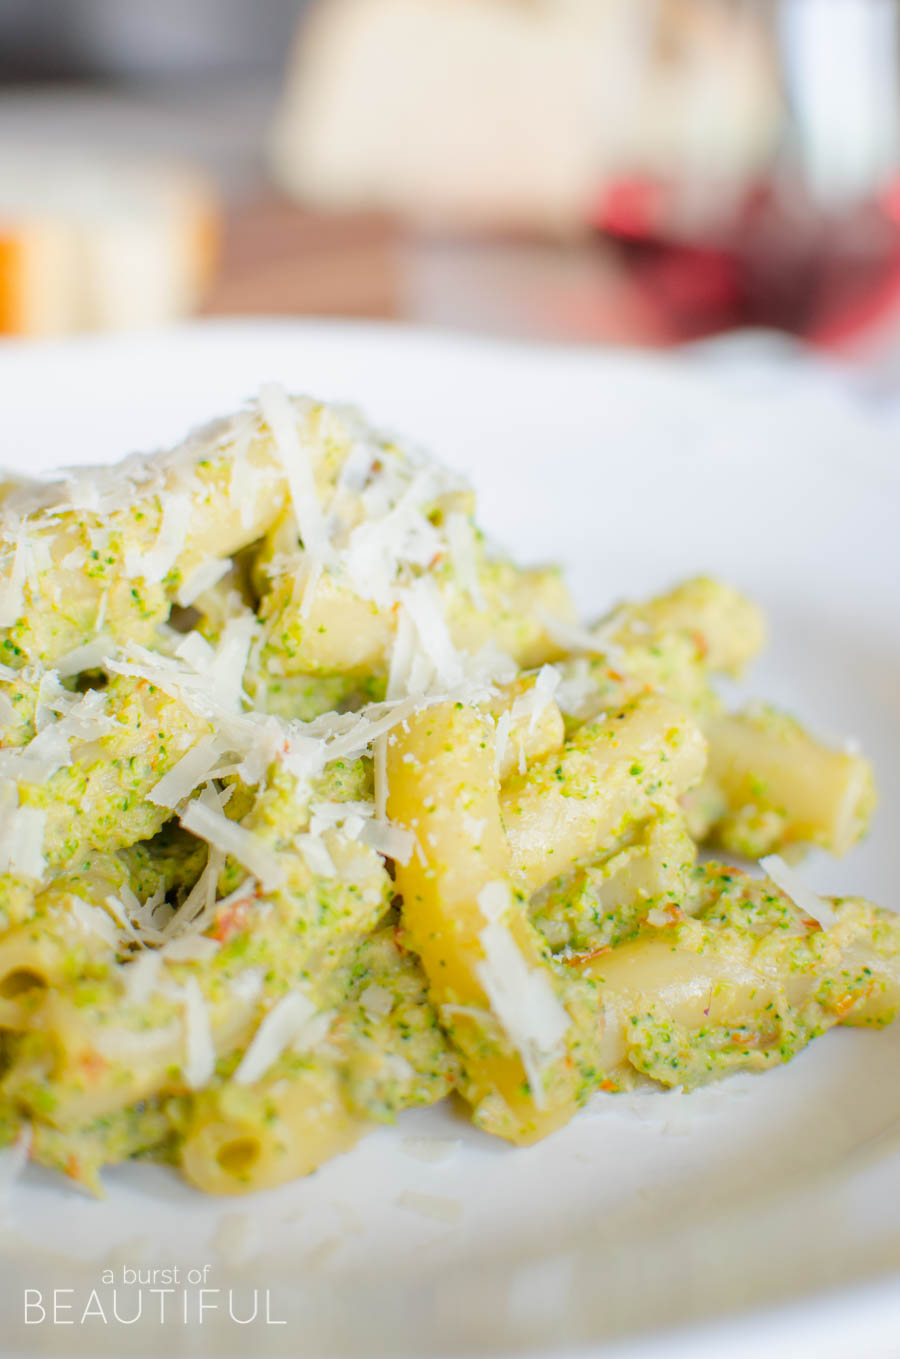 Creamy Broccoli Rigatoni is an easy and healthy family-friendly dinner for busy weeknights. Get the recipe at aburstofbeautiful.com |A Burst of Beautiful